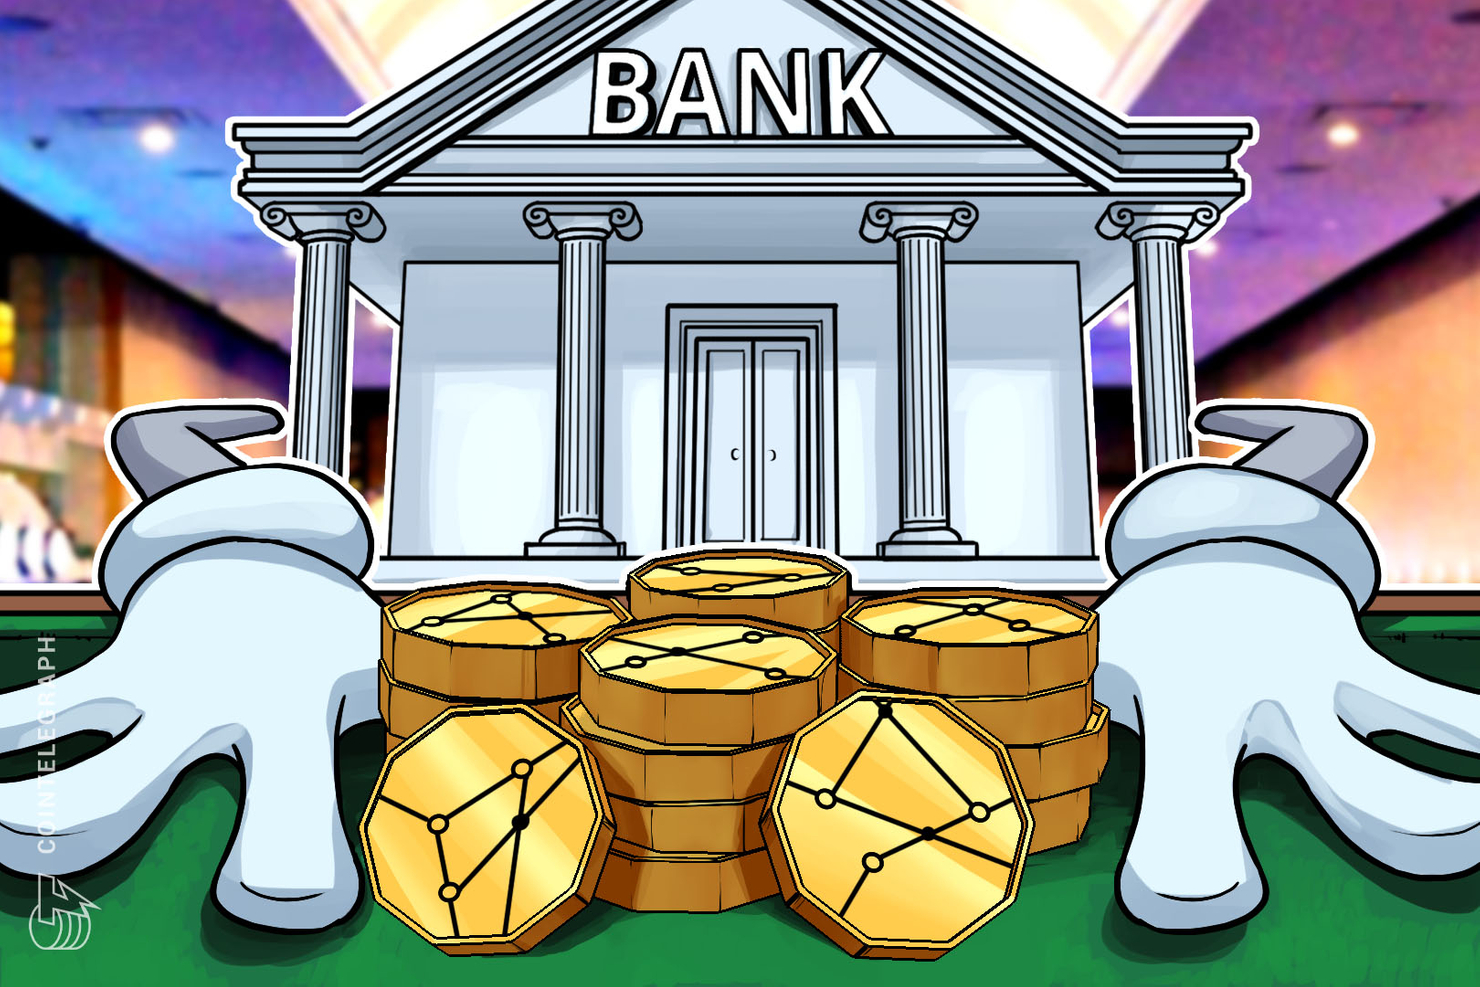 European Central Bank: Crypto Does Not Have Tangible Impact on Real Economy